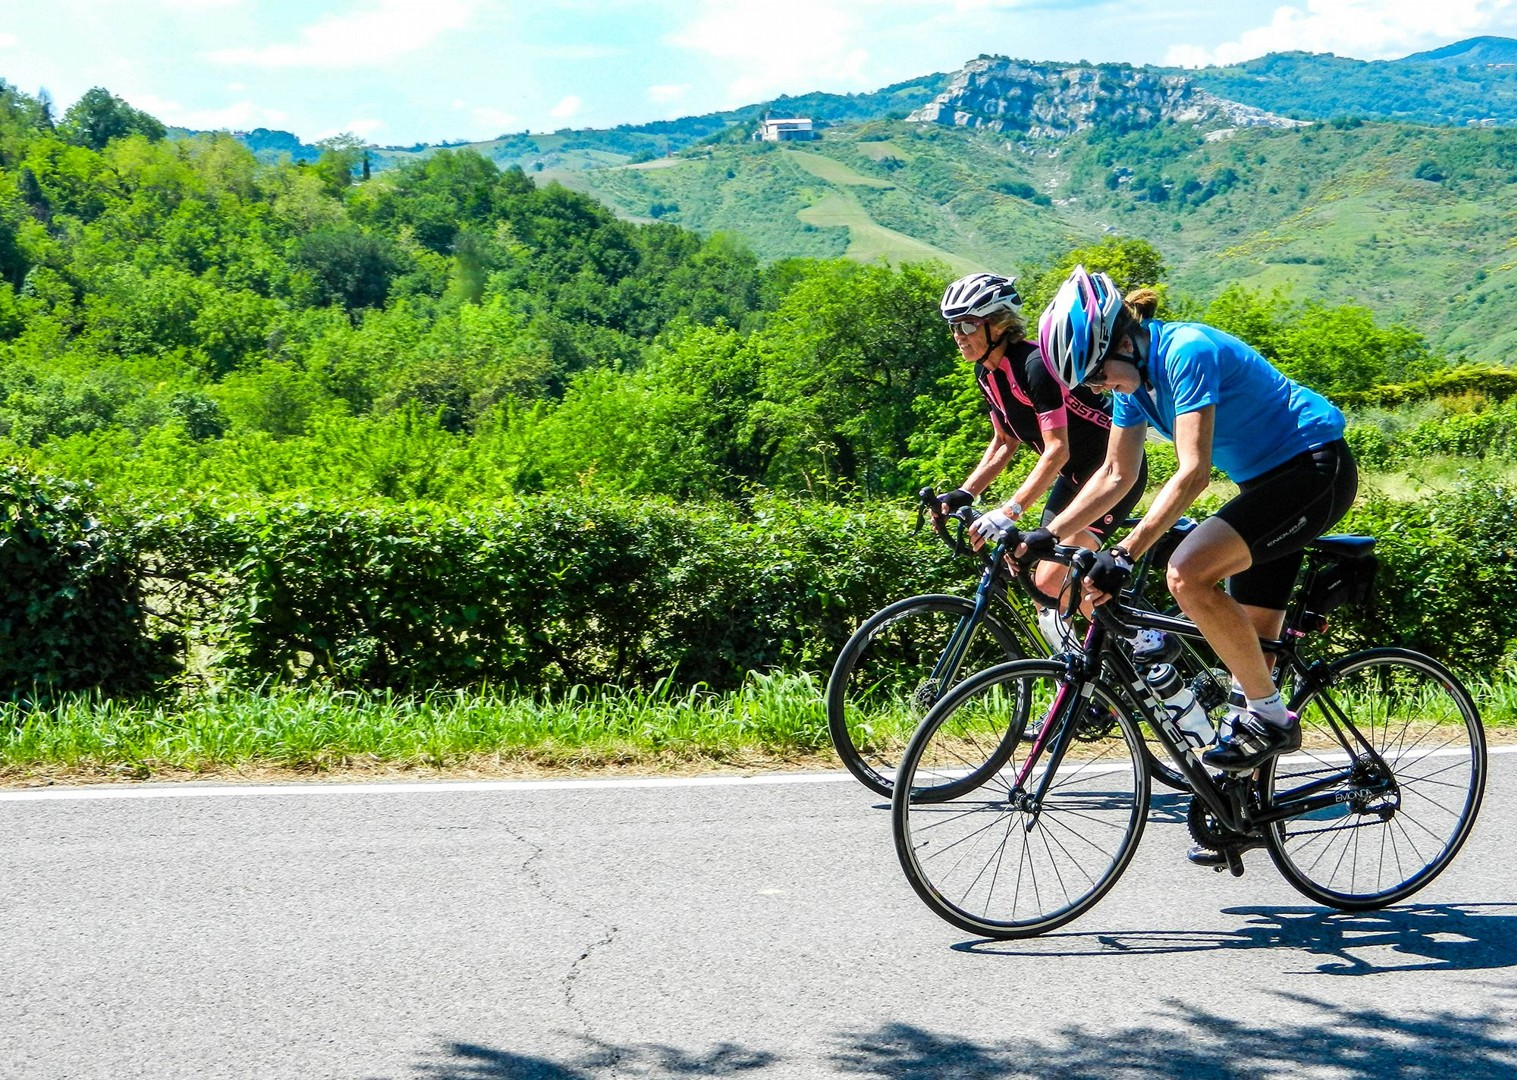 road-cycling-guided-with-group-italy-saddle-skedaddle.jpg - NEW! Italy - Coast to Coast - L'Adriatico al Tirreno - Road Cycling